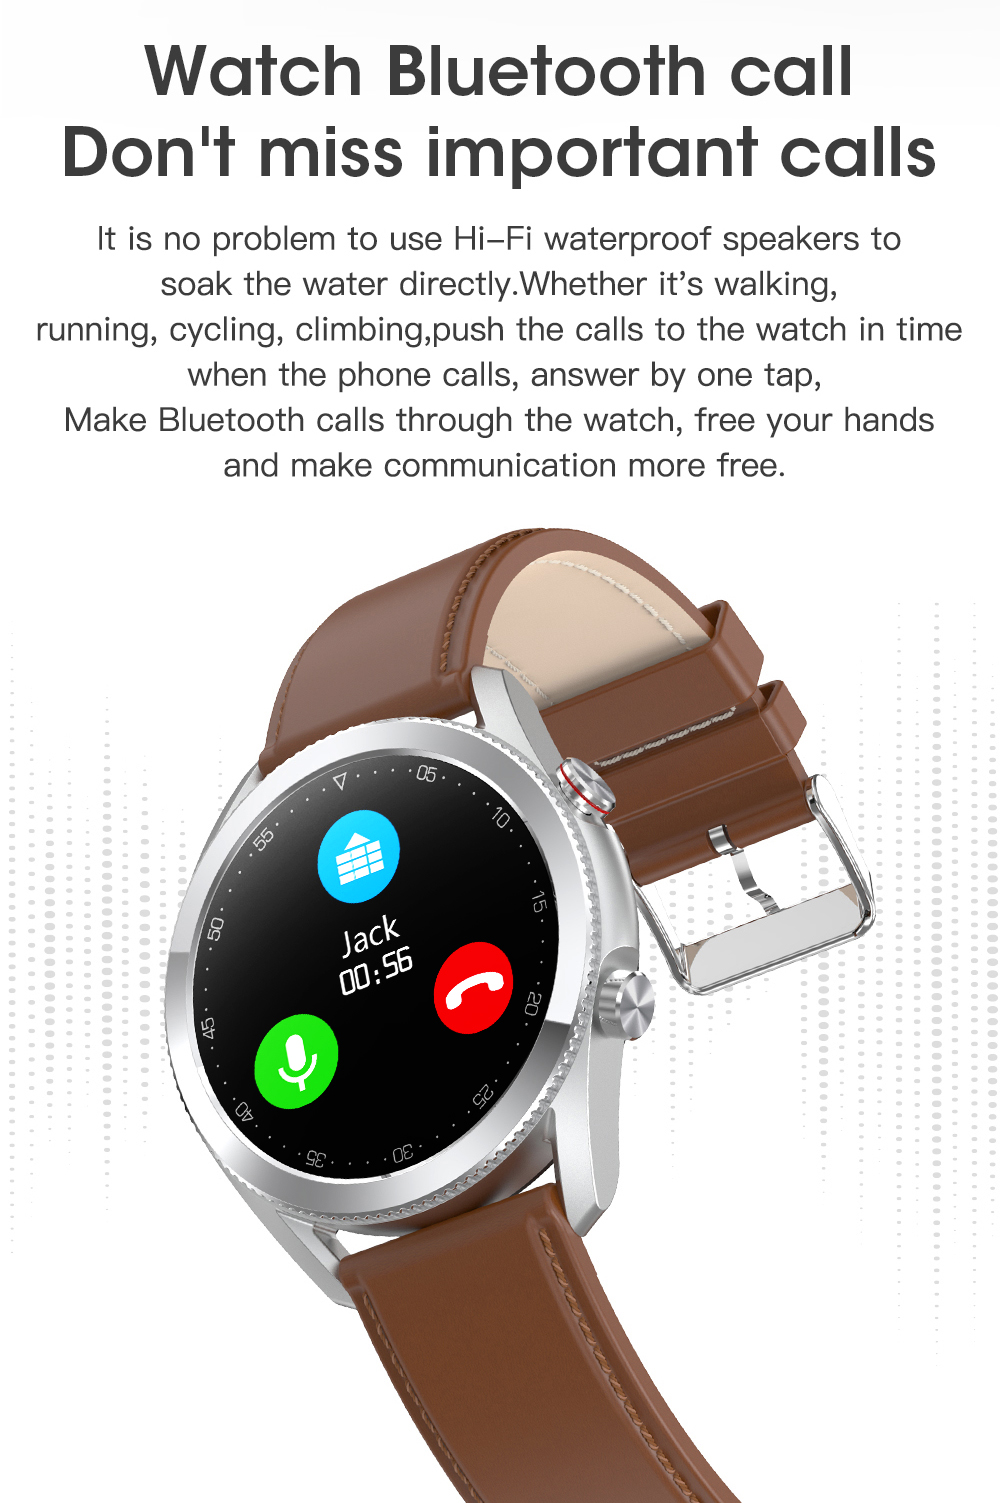 H9f55a67e38bc44449c98553cc5670dd0R Timewolf Smart Watch Men 2021 IP68 Waterproof Android Full Touch Sports Smartwatch Bluetooth Call For Samsung Huawei Android IOS